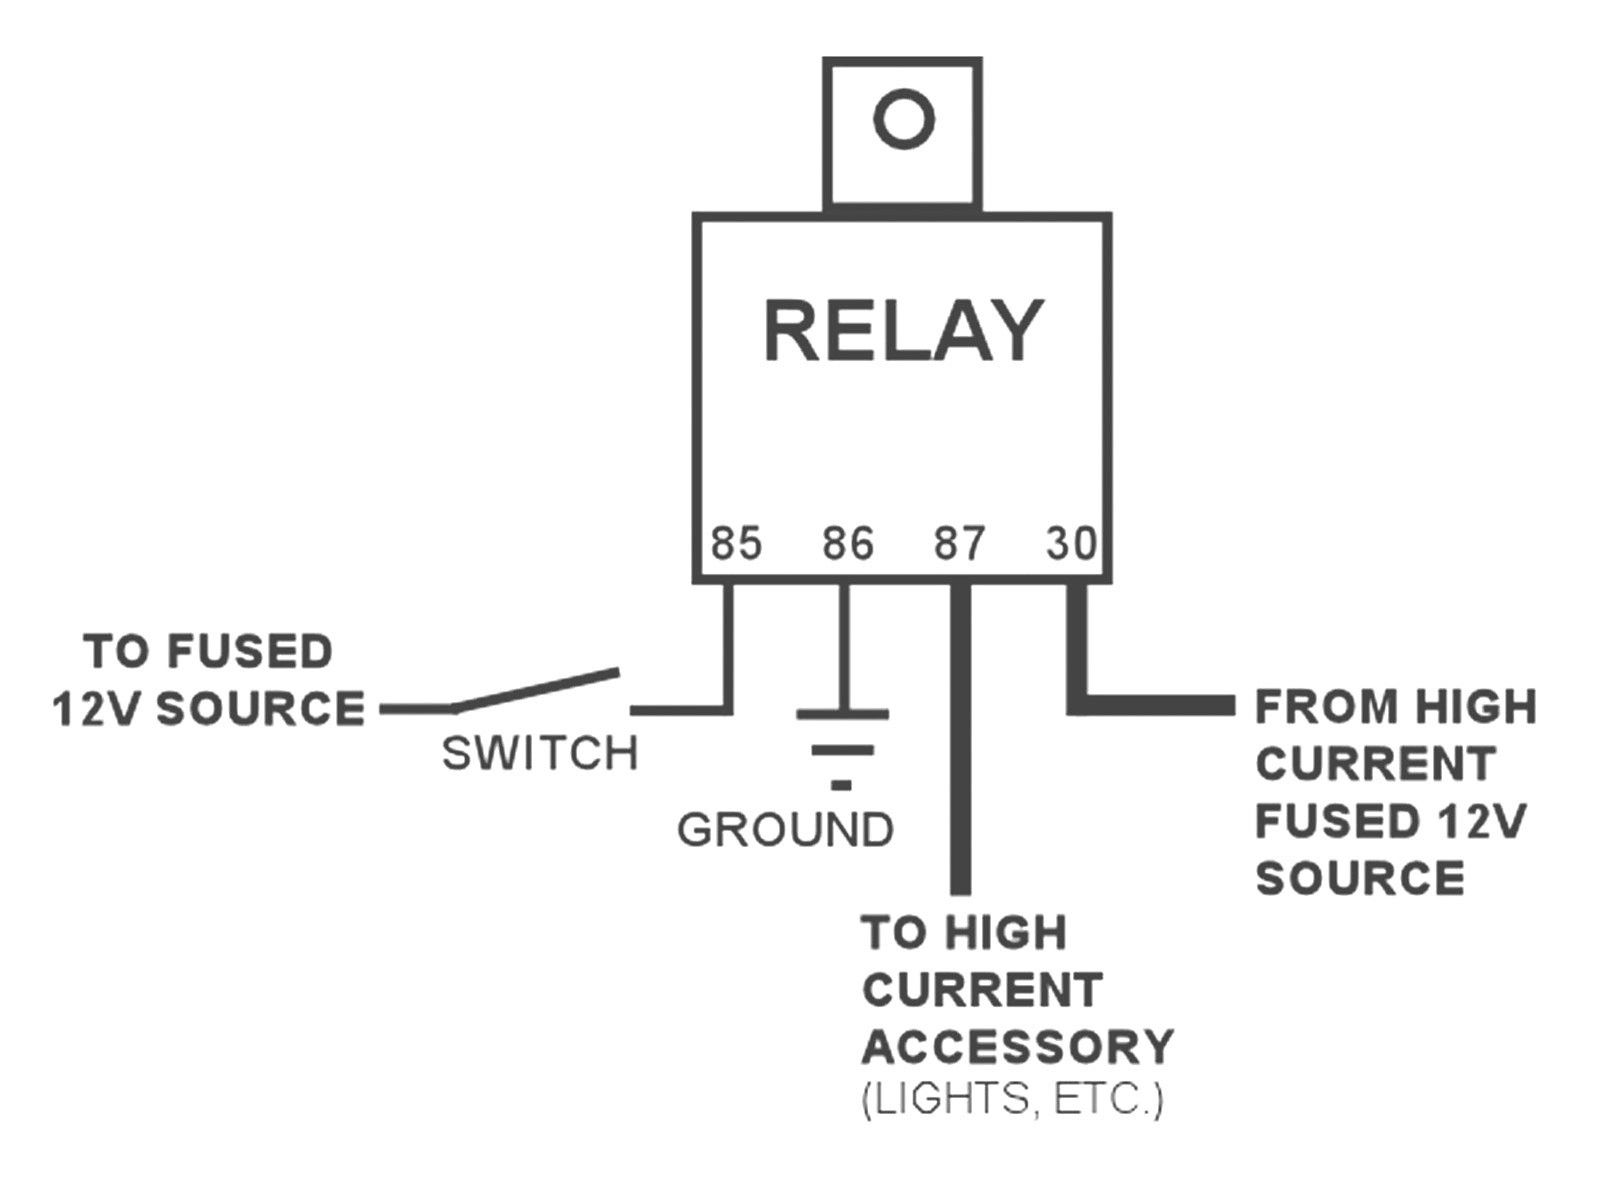 New Wiring Diagram For 40 Amp Relay  Diagram  Diagramtemplate  Diagramsample In 2019